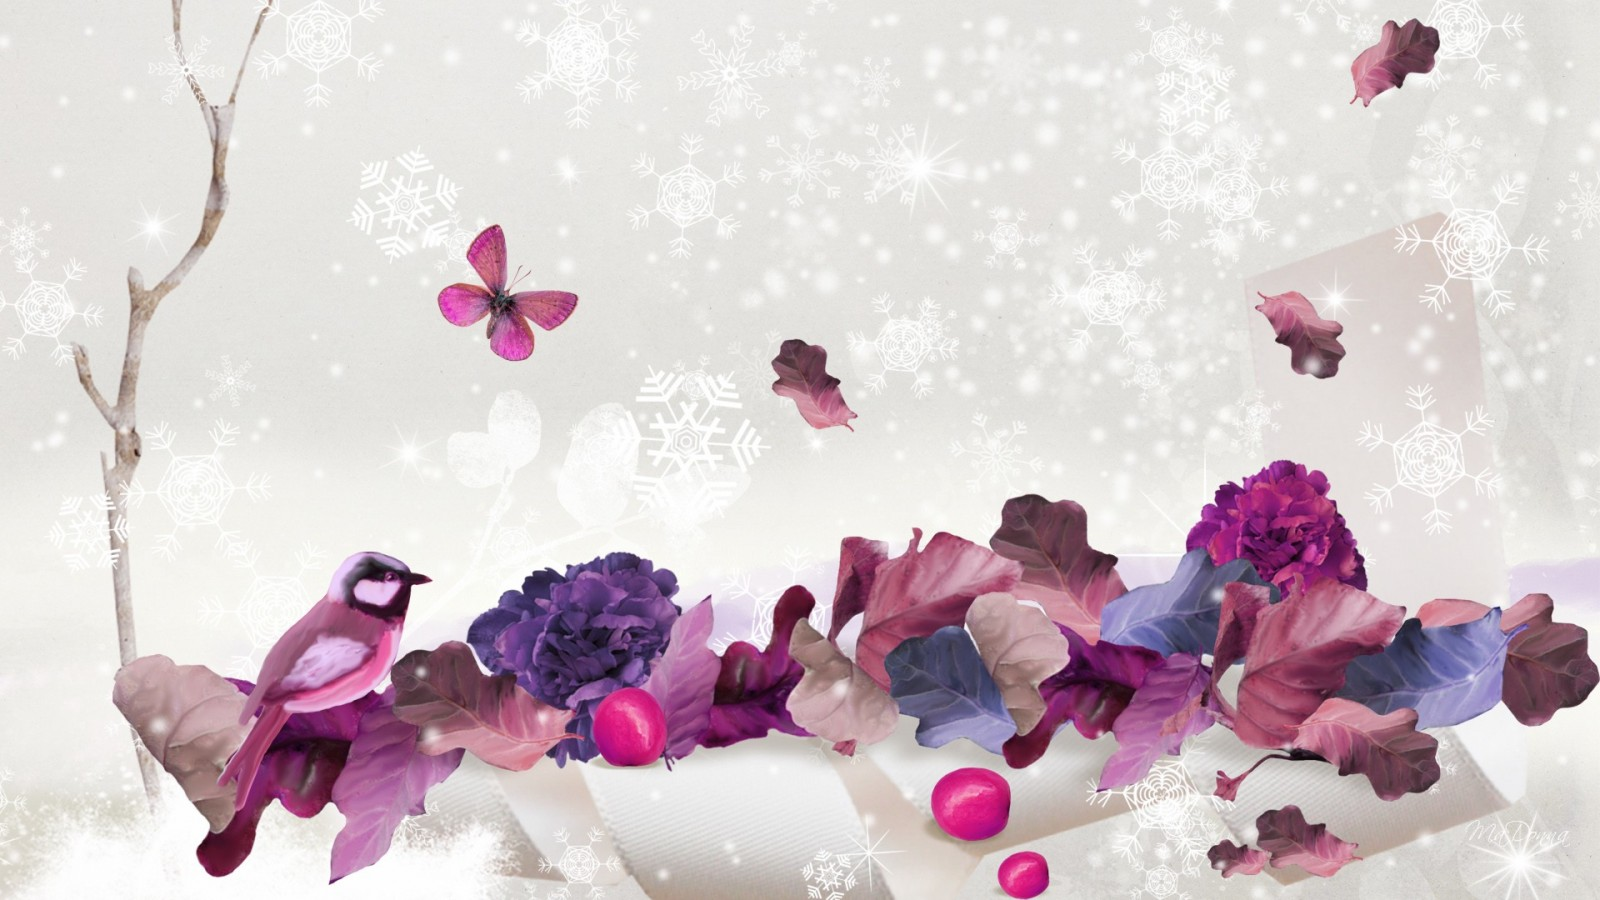 Winter-background-pink-leaves_800x450.jpg